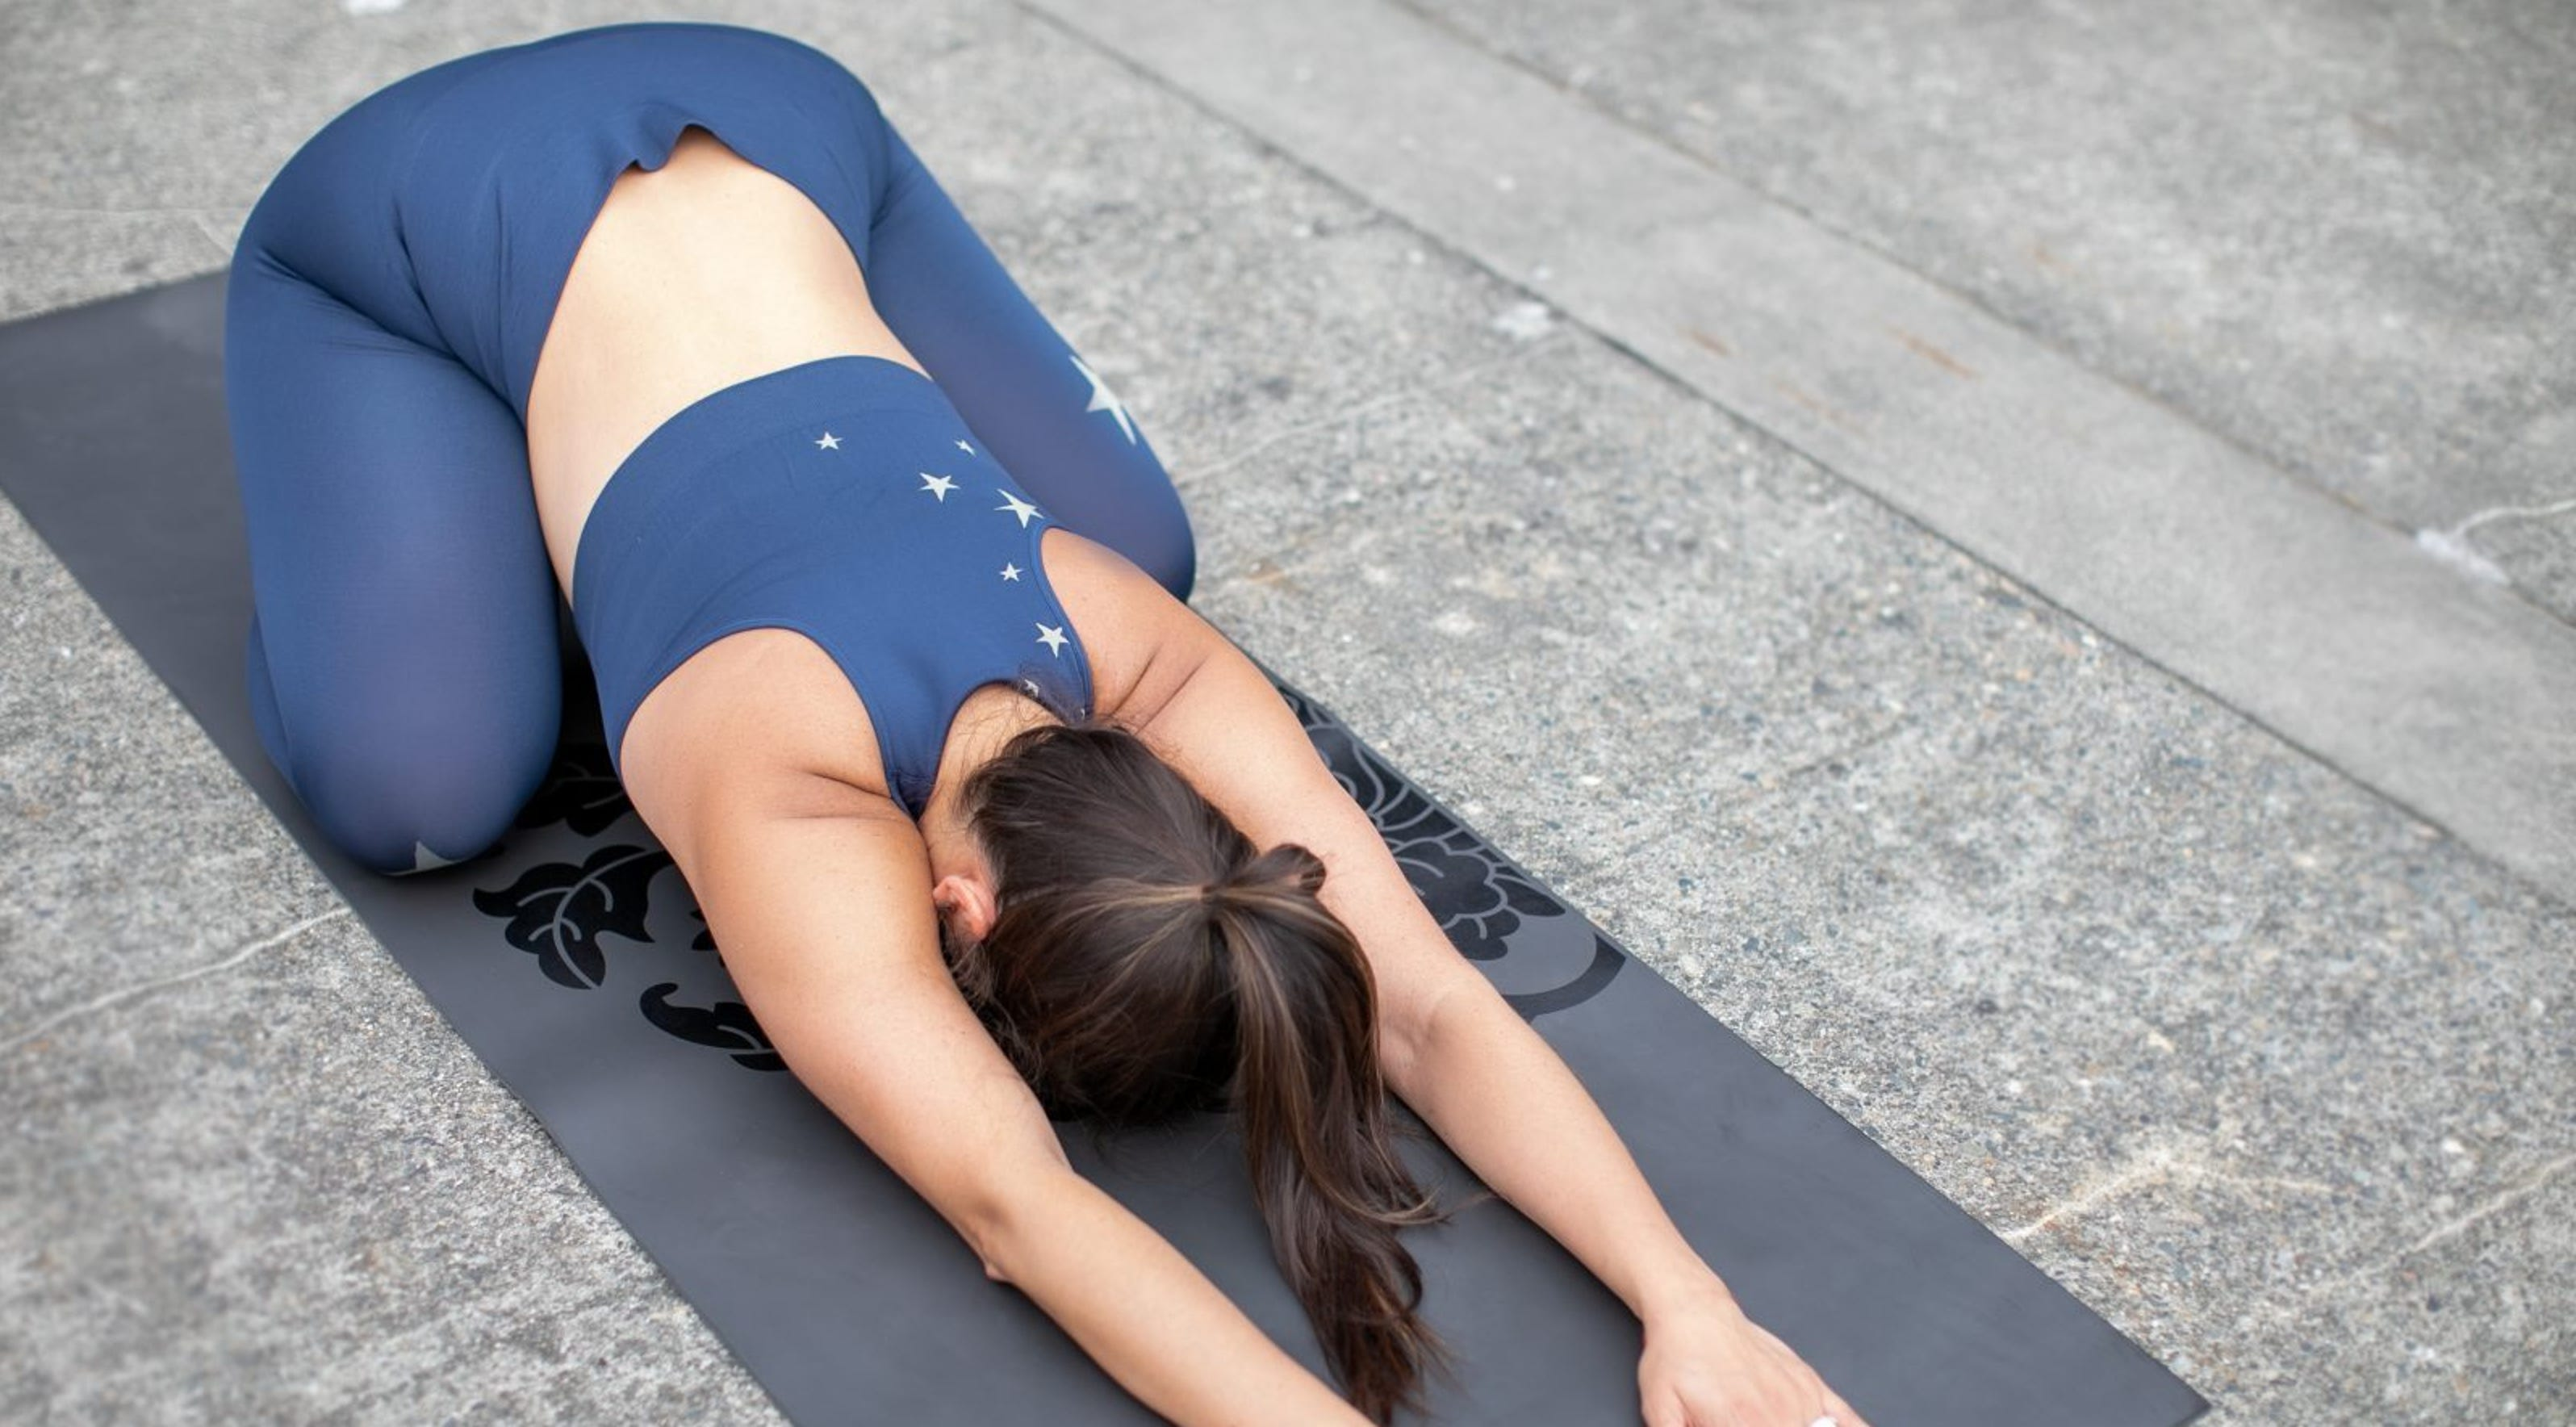 50 Easy Yoga Poses You Don't Have to Be an Expert to Perform ...